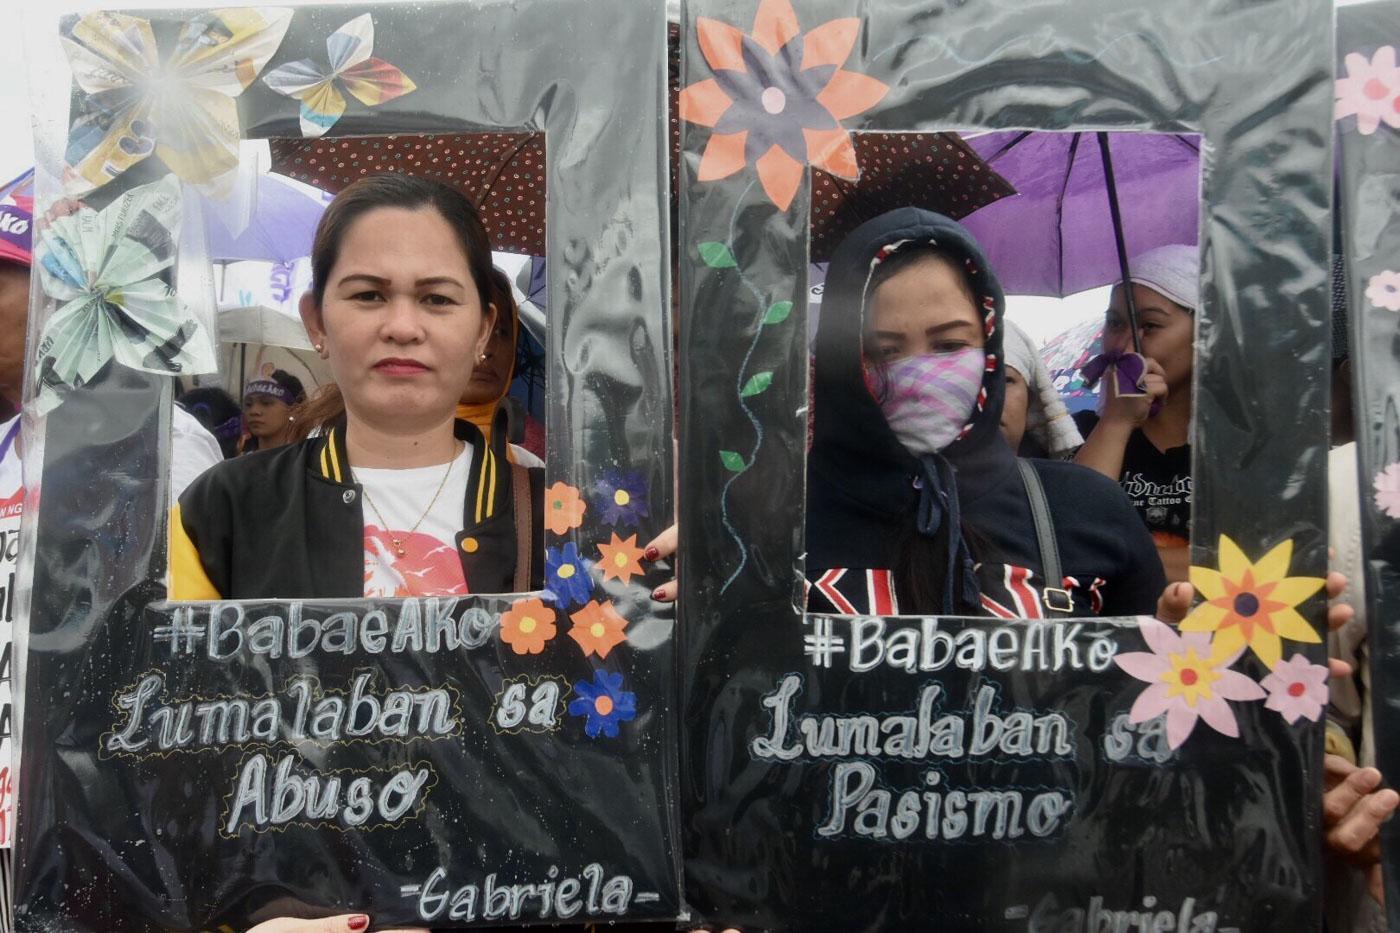 CREATIVE PROTEST. Different from the typical rallies characterized by loud chants, Filipino women use artwork to protest against Duterte's misogyny and sexism. Photo by Angie de Silva/Rappler